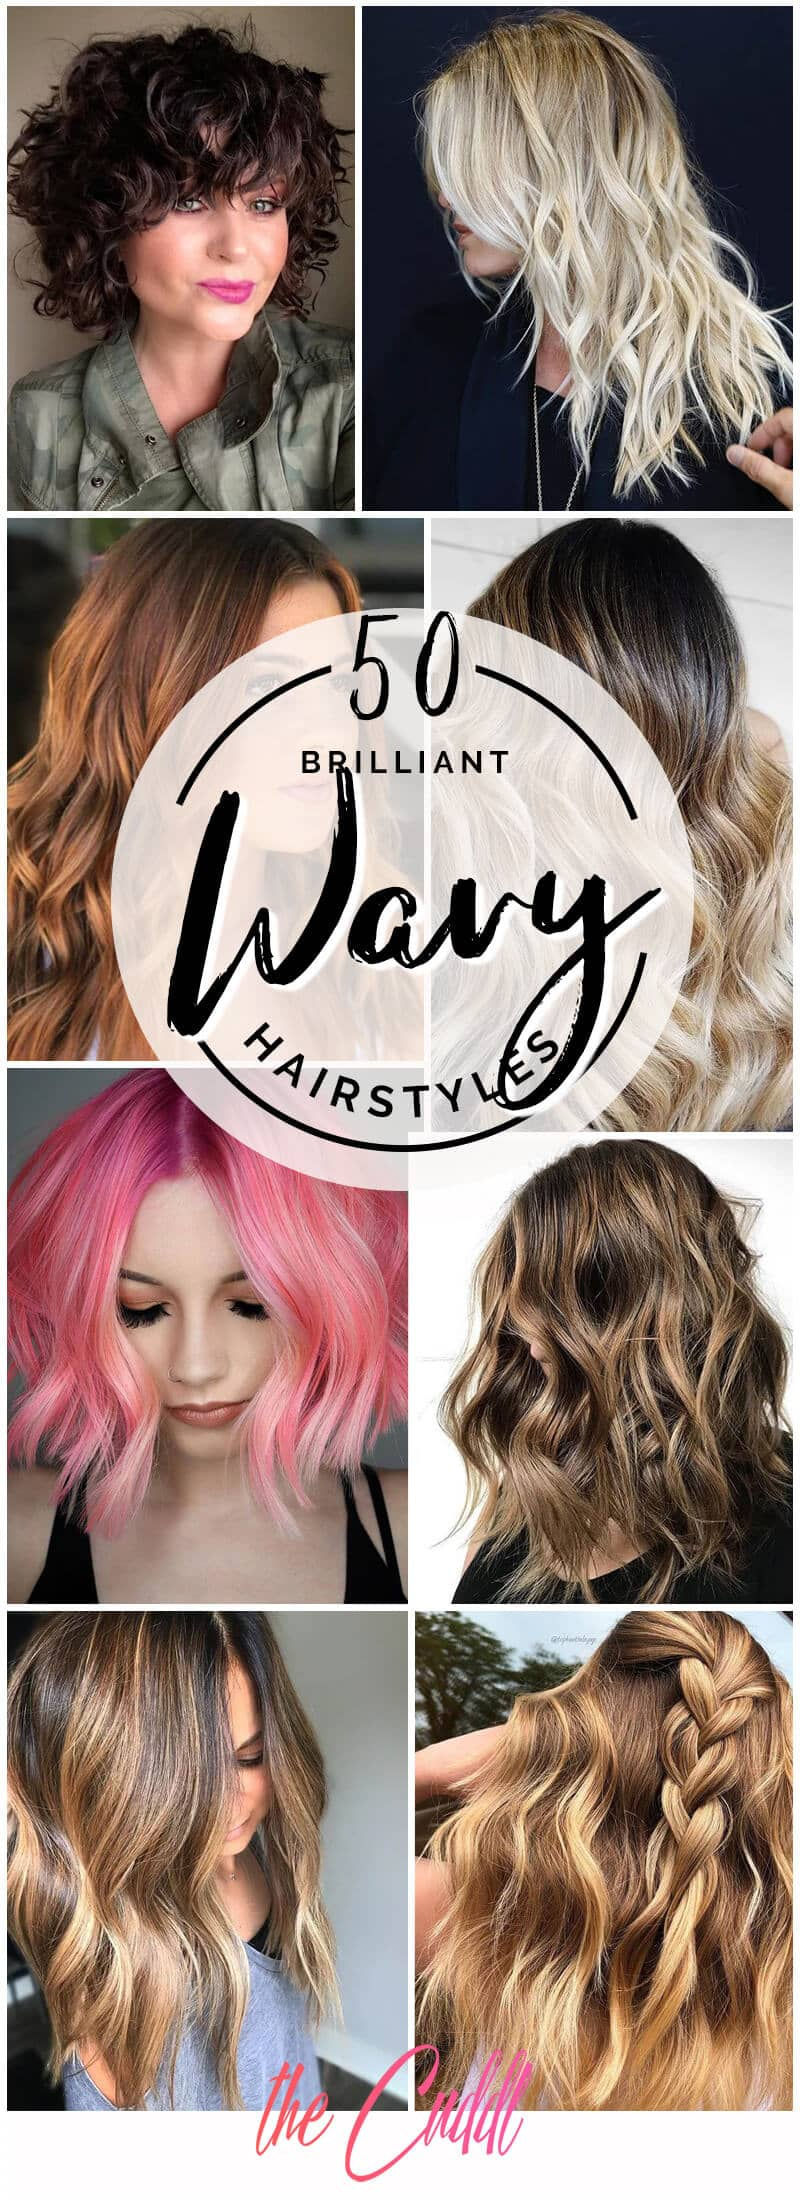 50 Beautiful Wavy Hairstyles to Rock Wavy Hair Like a Boss